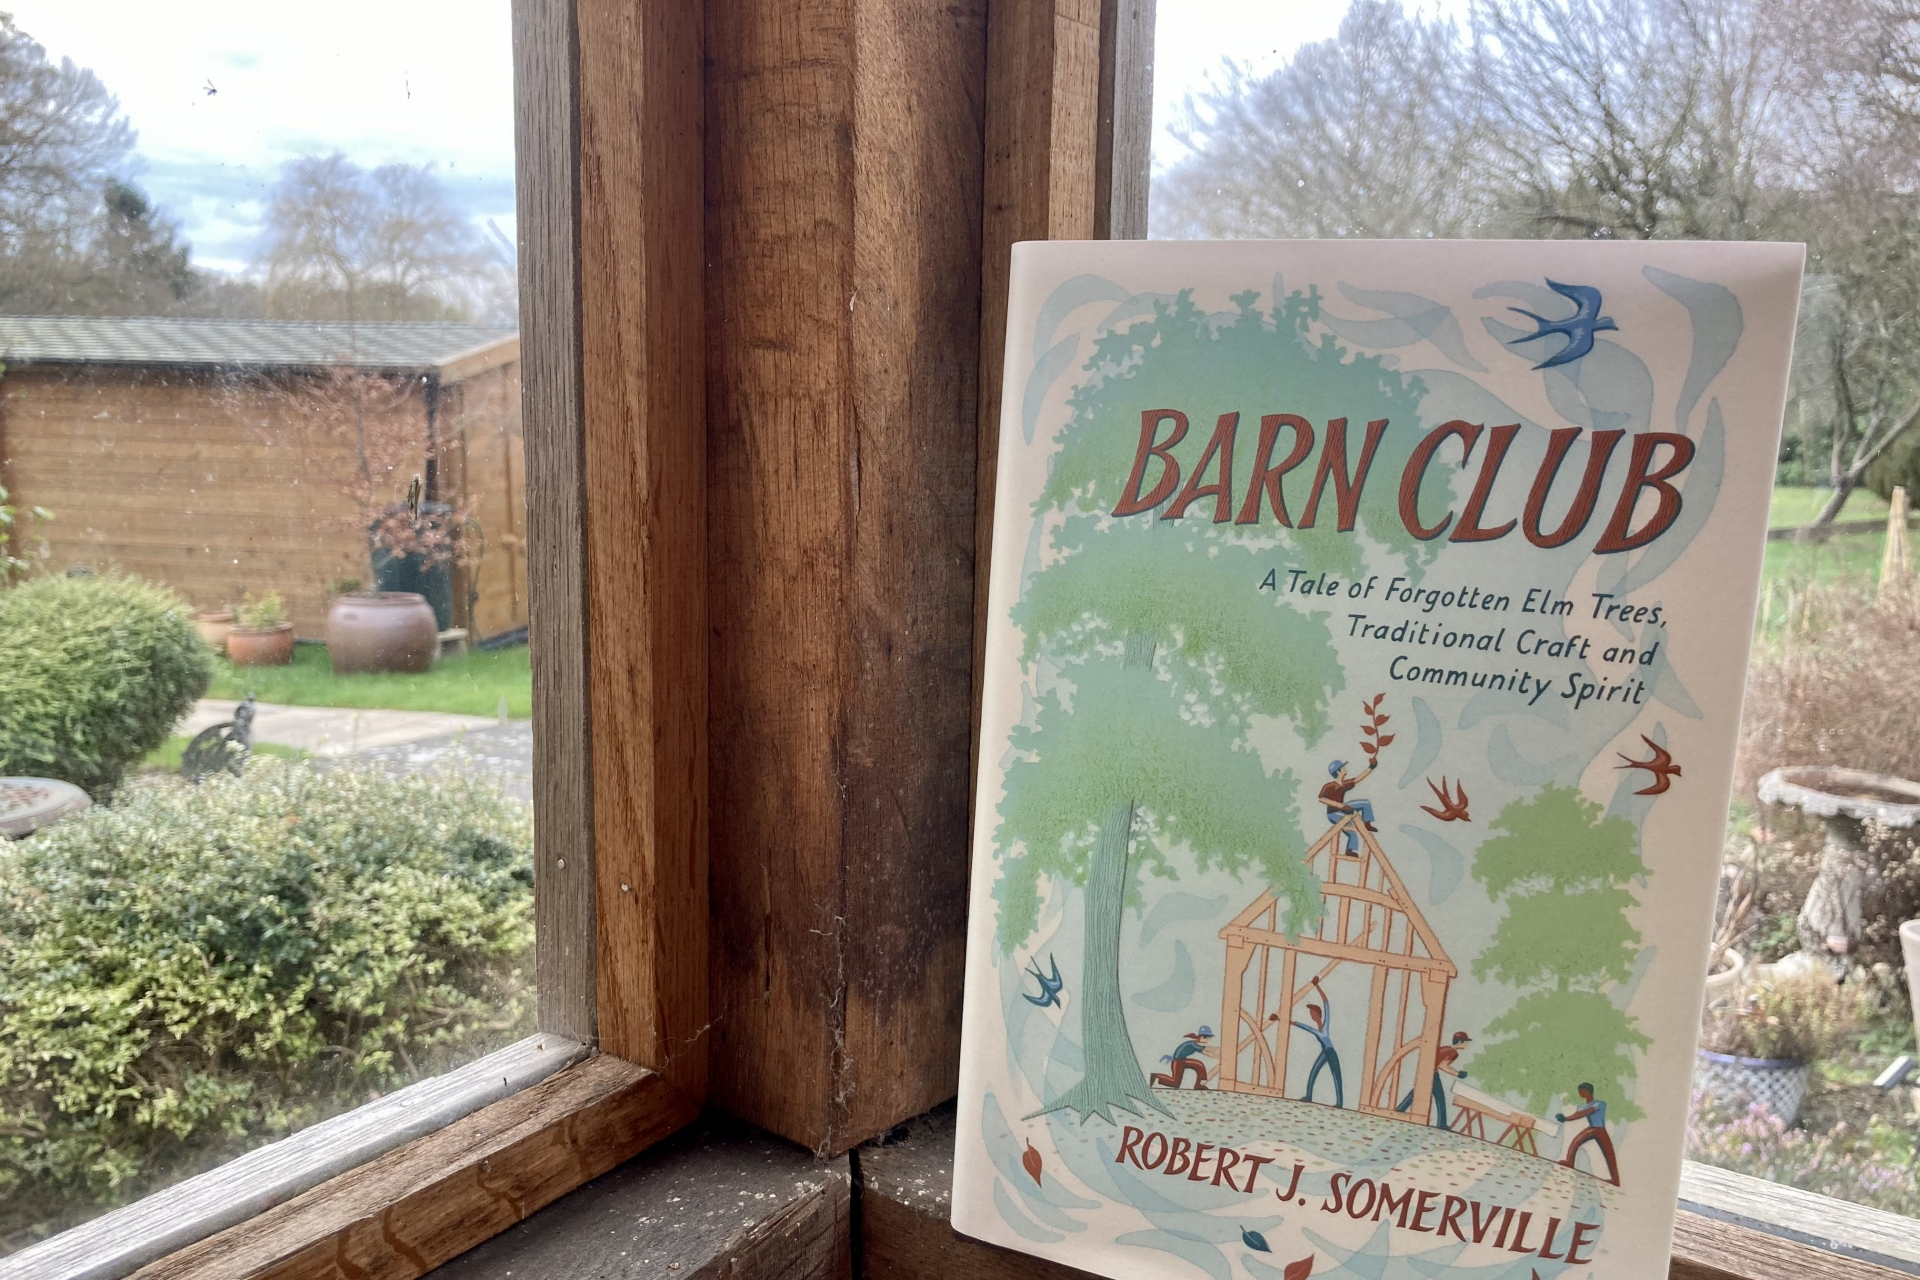 March 2021 Book Club Recommendation: Barn Club by Robert J Somerville